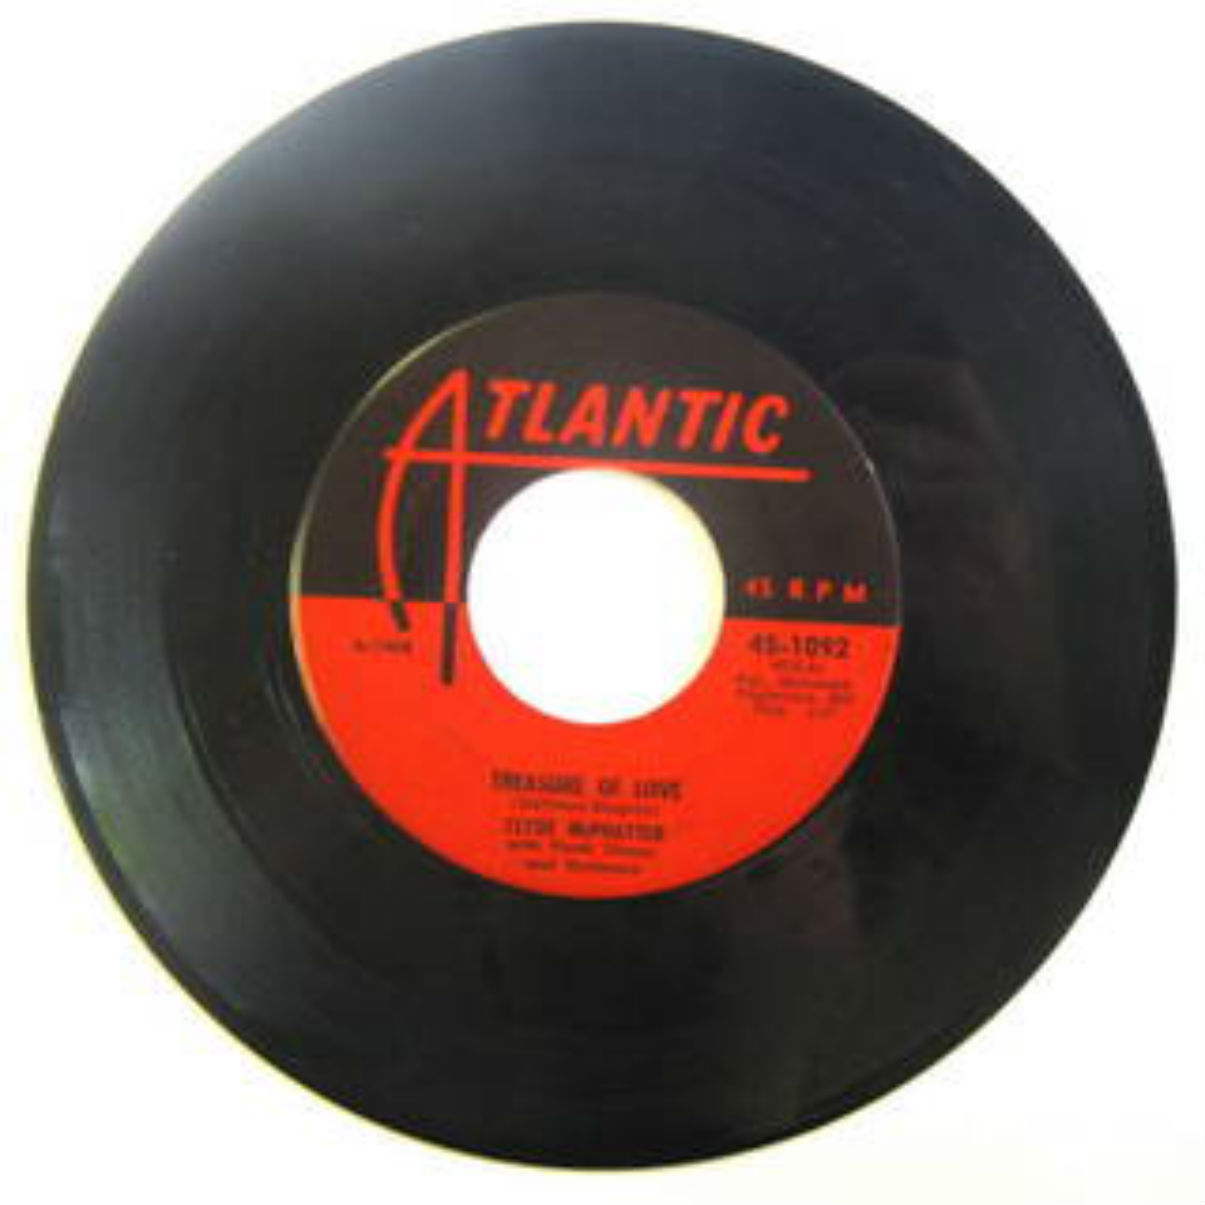 Clyde Mcphatter Treasure+Of+Love 7''